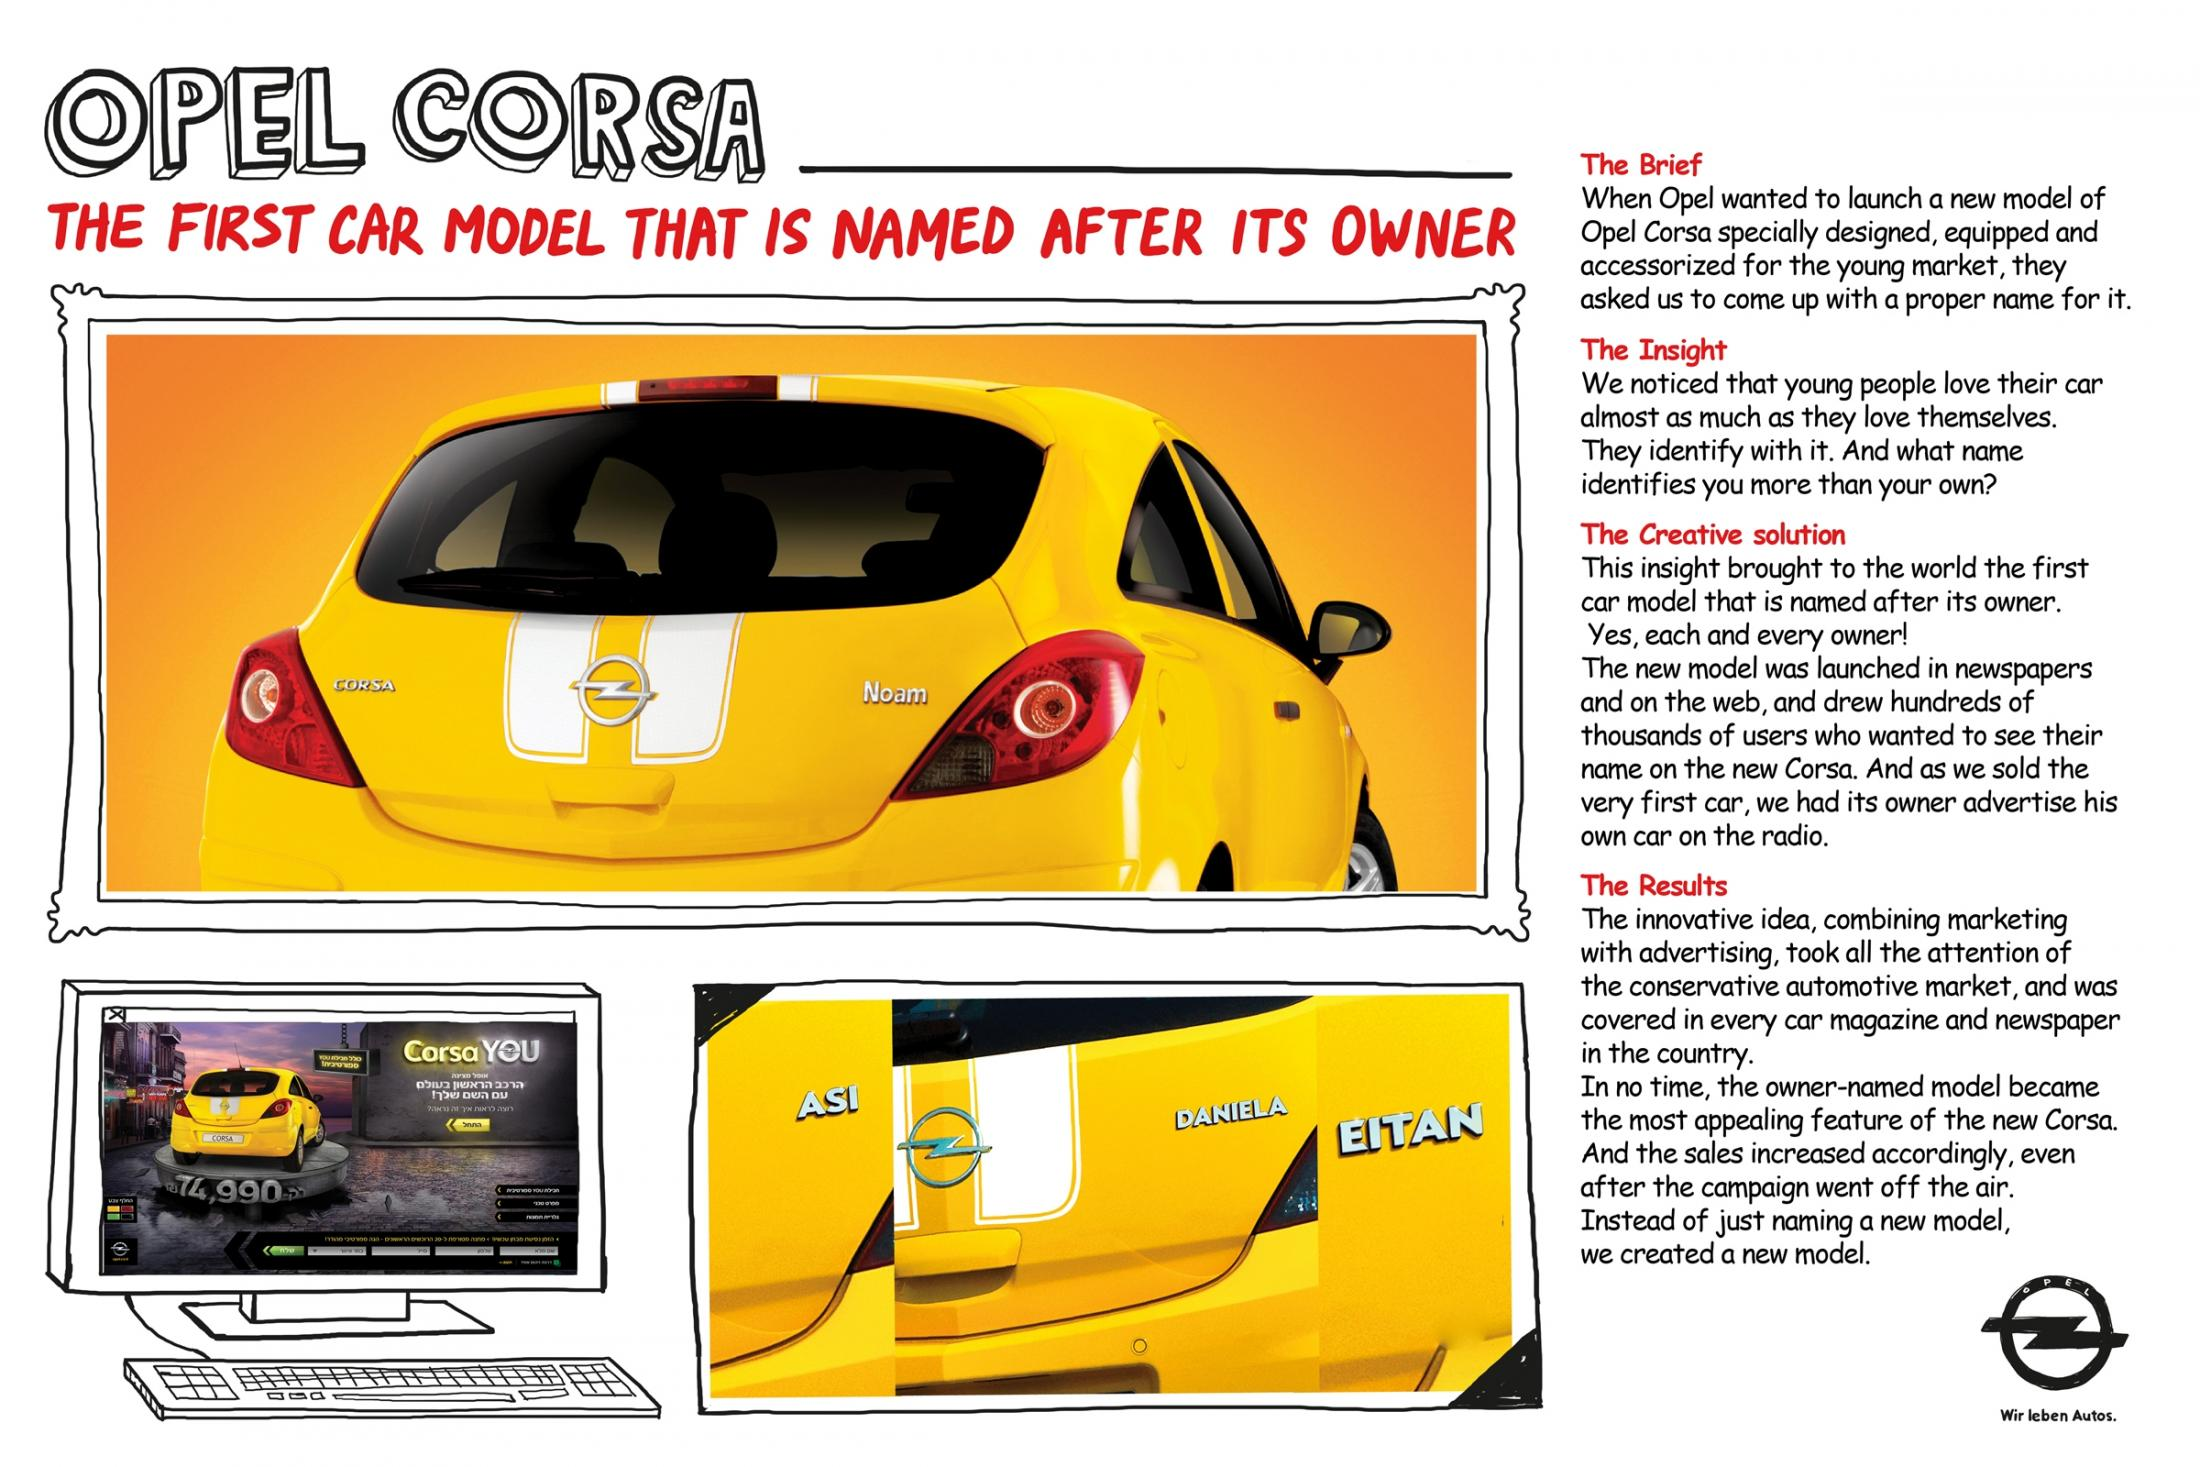 Thumbnail for Opel Corsa __________ The first car model named after its owner